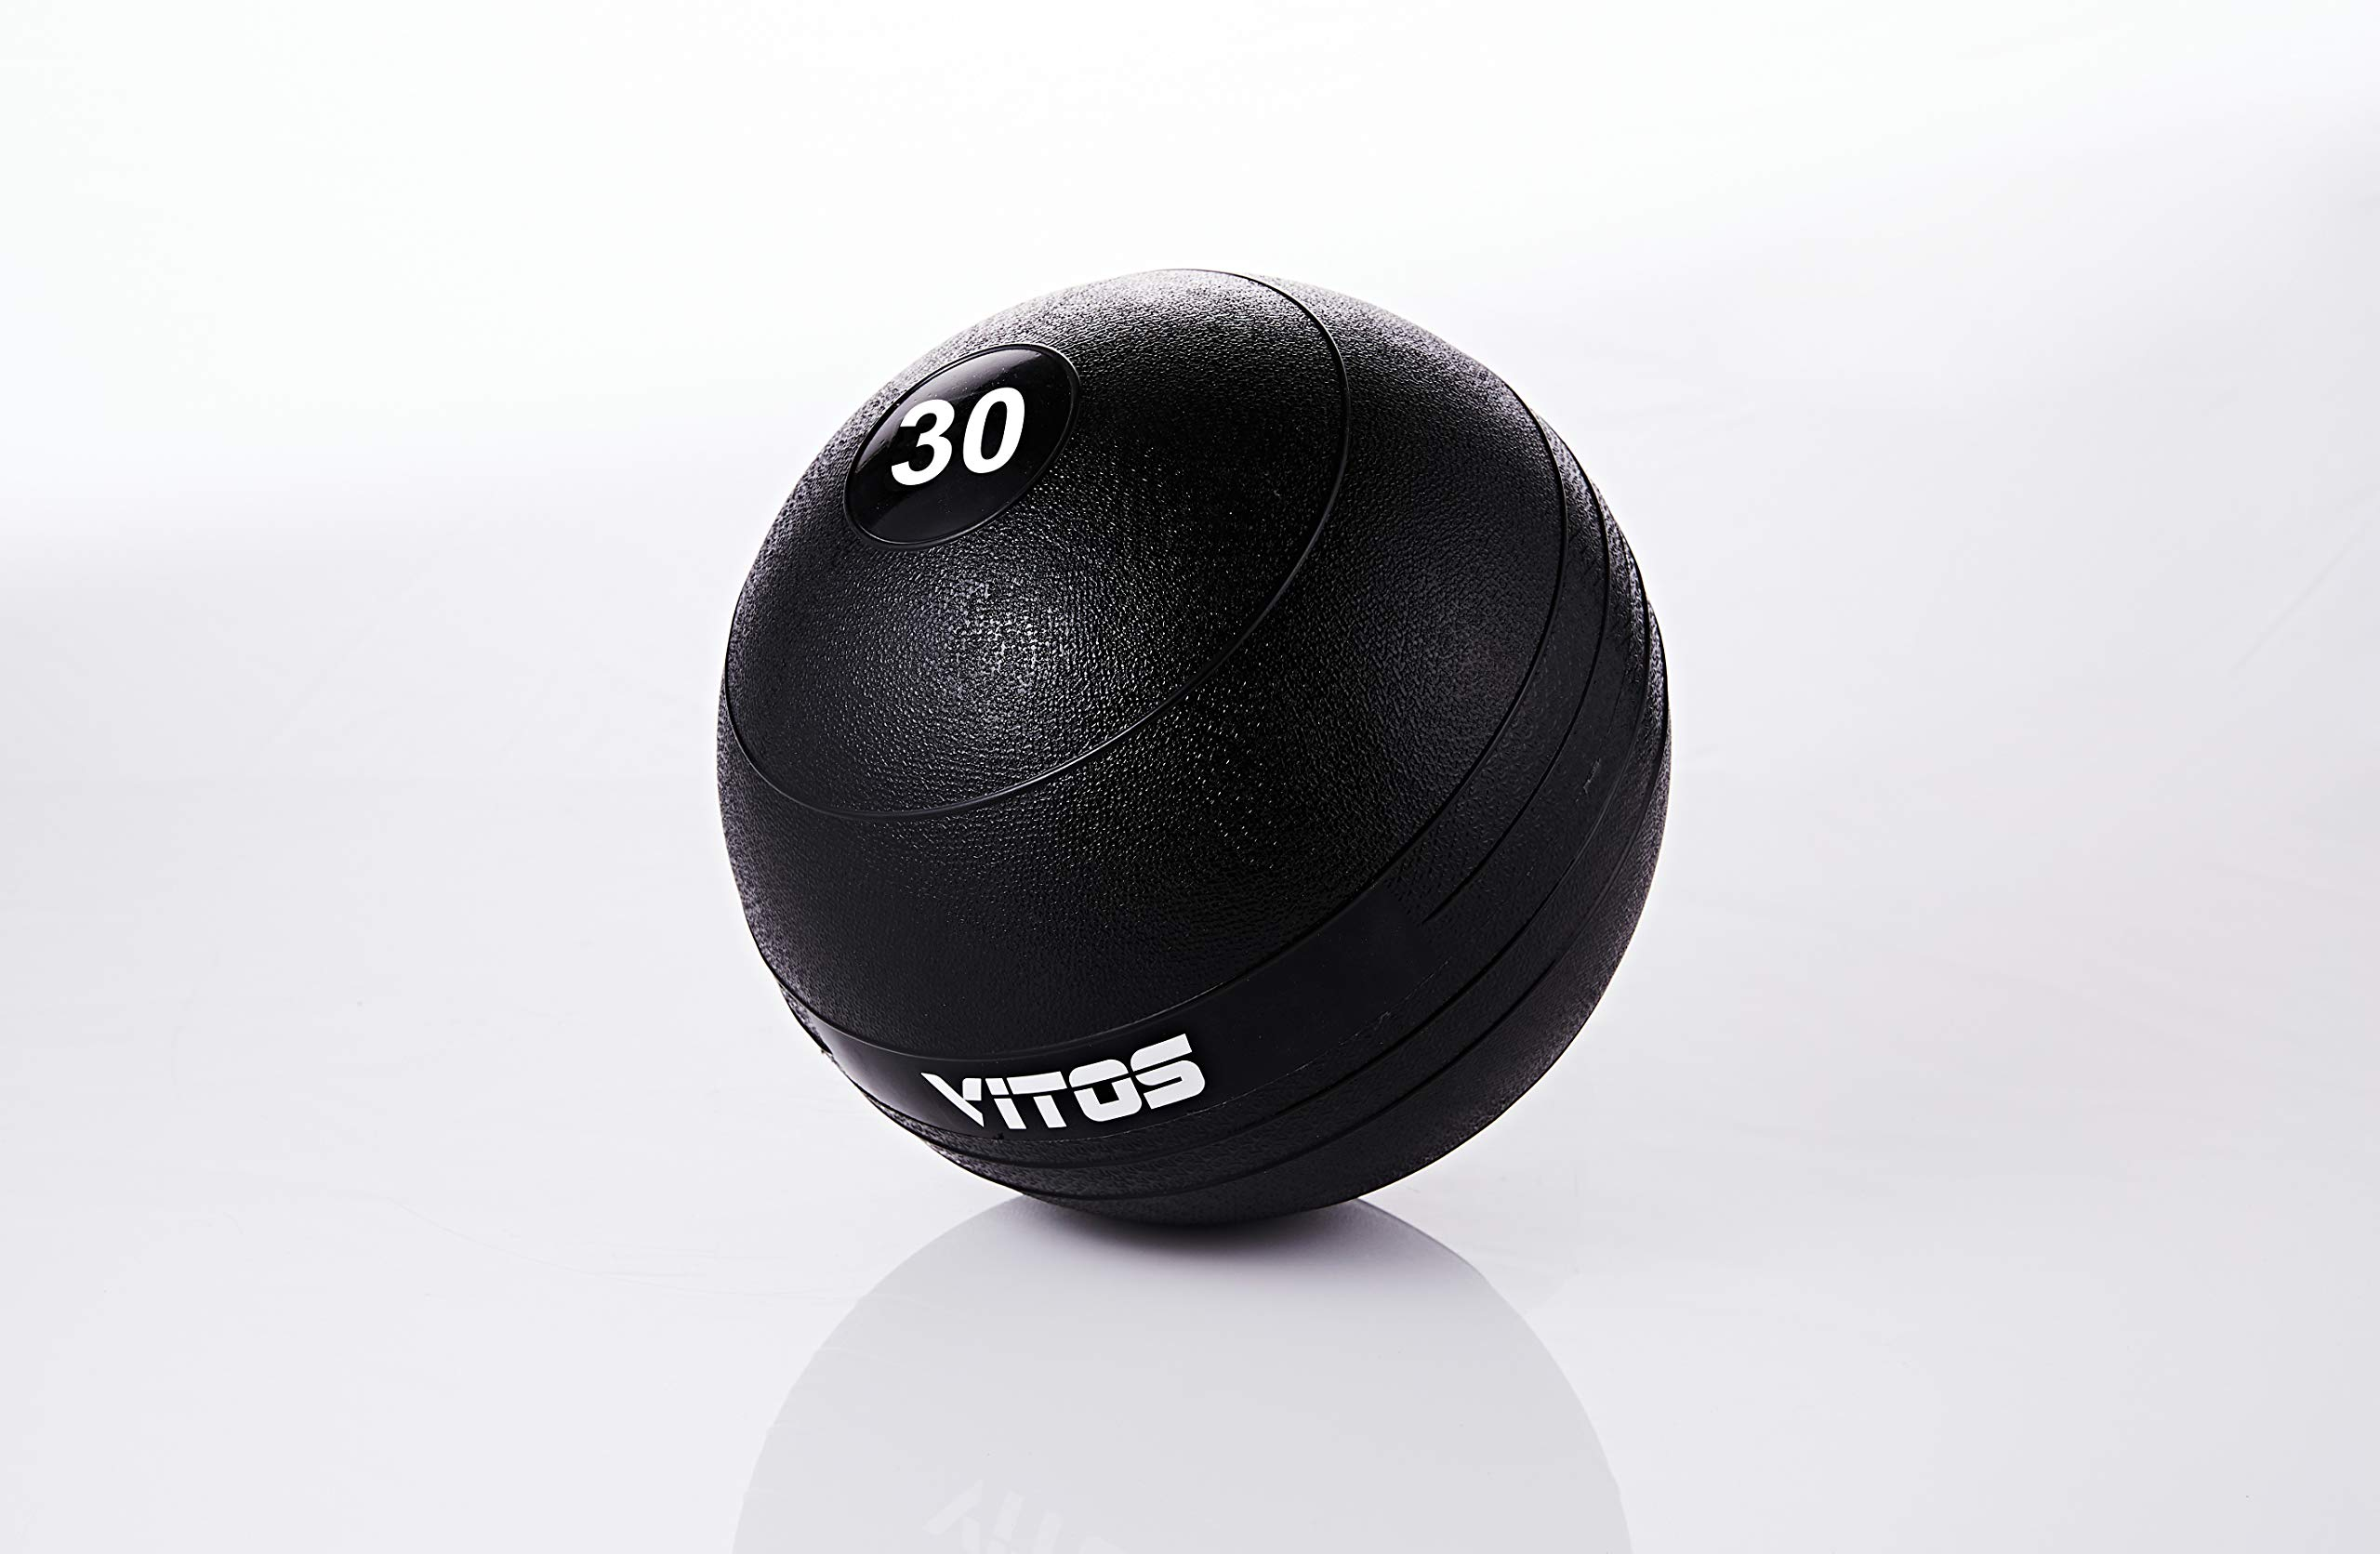 Vitos Fitness Exercise Slam Medicine Ball 10 to 70 Pounds | Durable Weighted Gym Accessory Strength Conditioning Cross Training Core Squats Lunges Spike Ball Rubber Weight Workout (30)